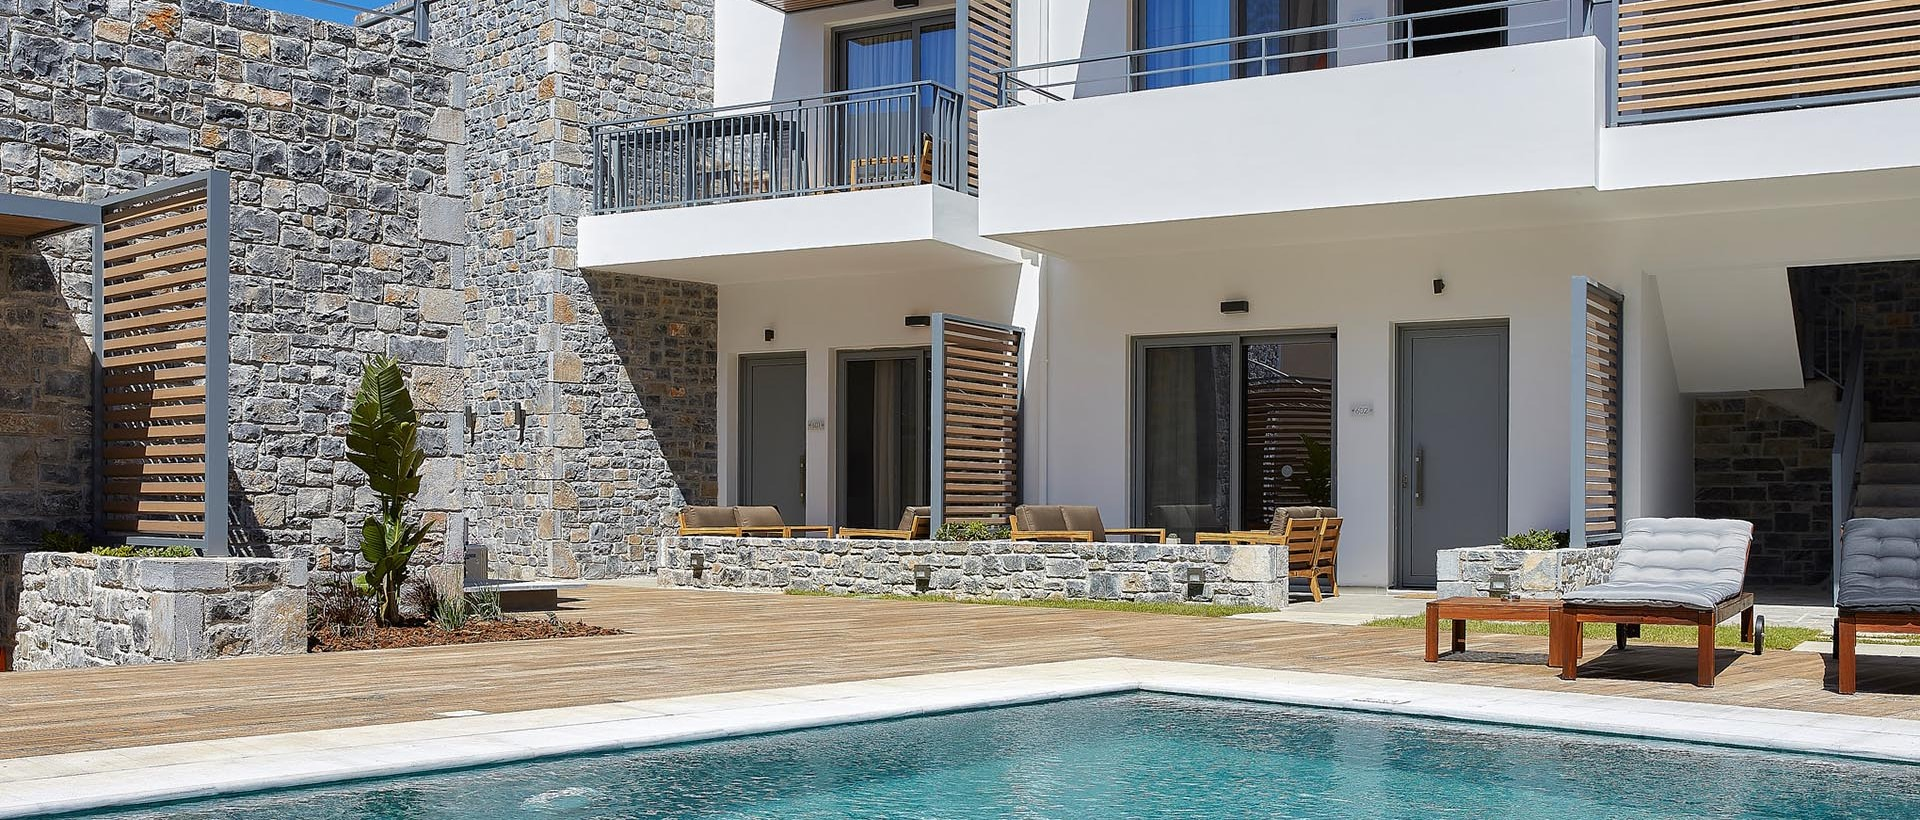 Seascape_Exterior_Pool_14